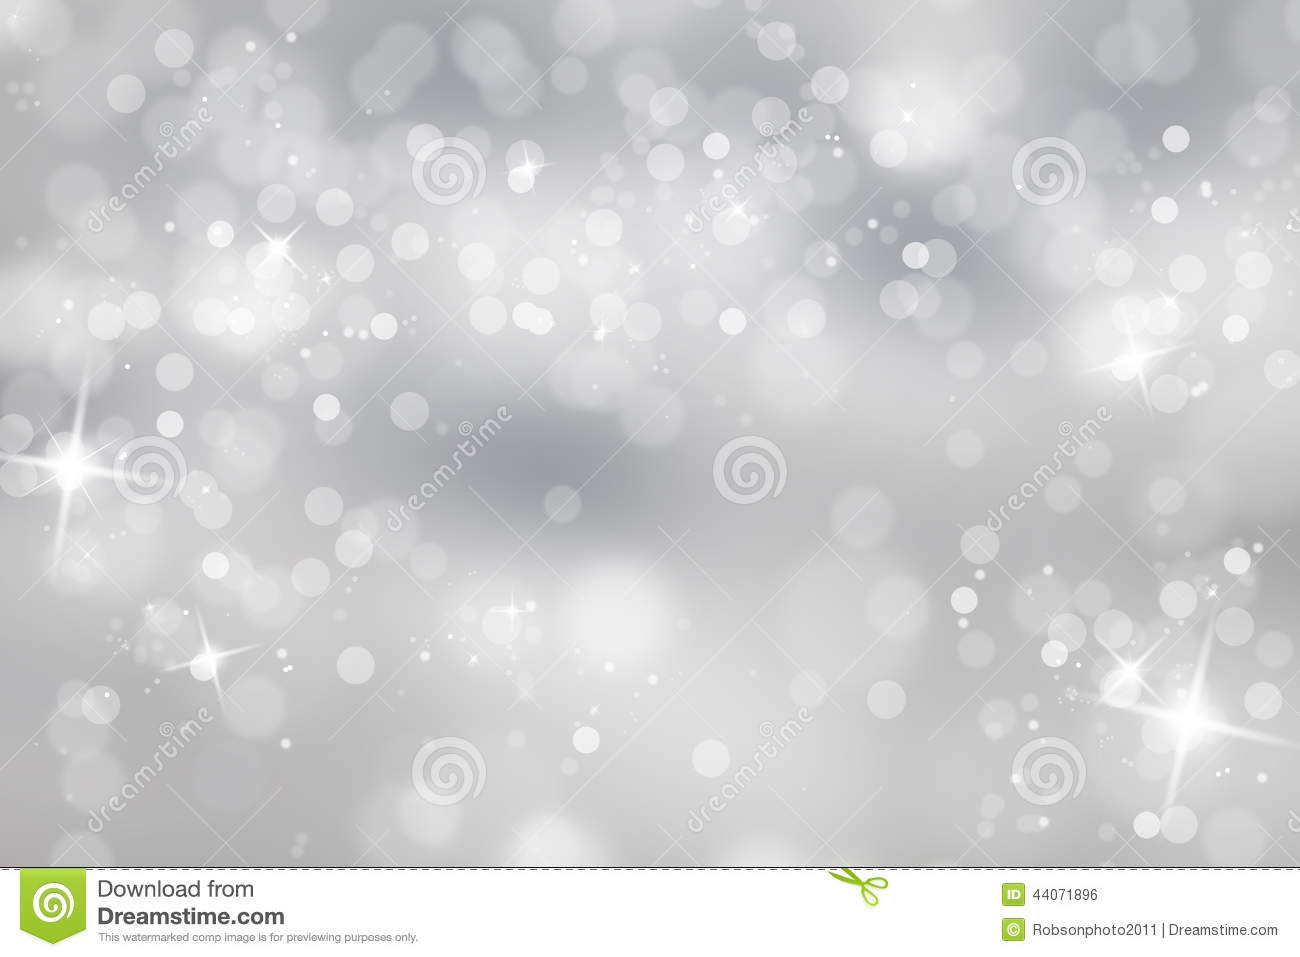 80fb6ff8c89b3 Winter Light Background With Sparkle Stock Photo - Image of silver ...